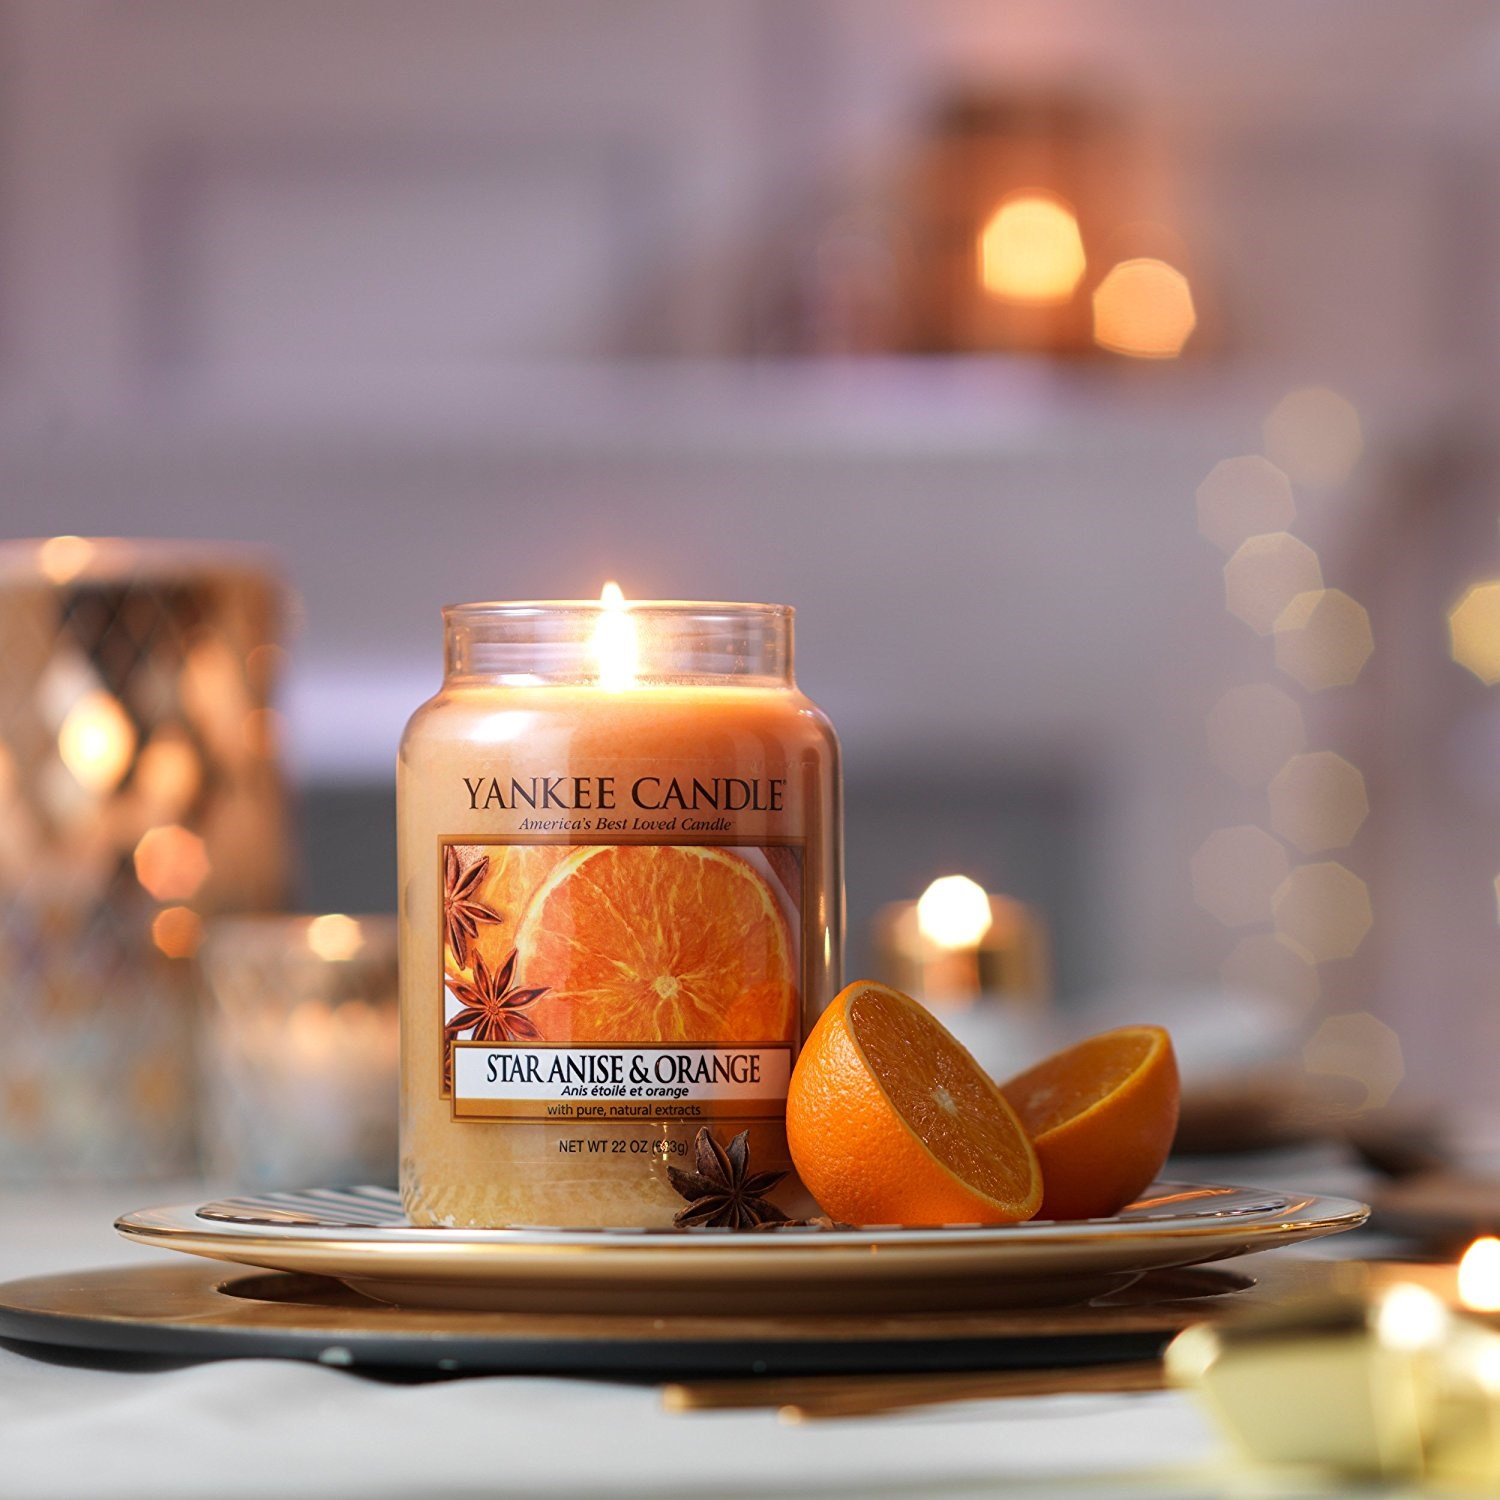 Yankee candle giara media star anise orange yankee for Candele arredo